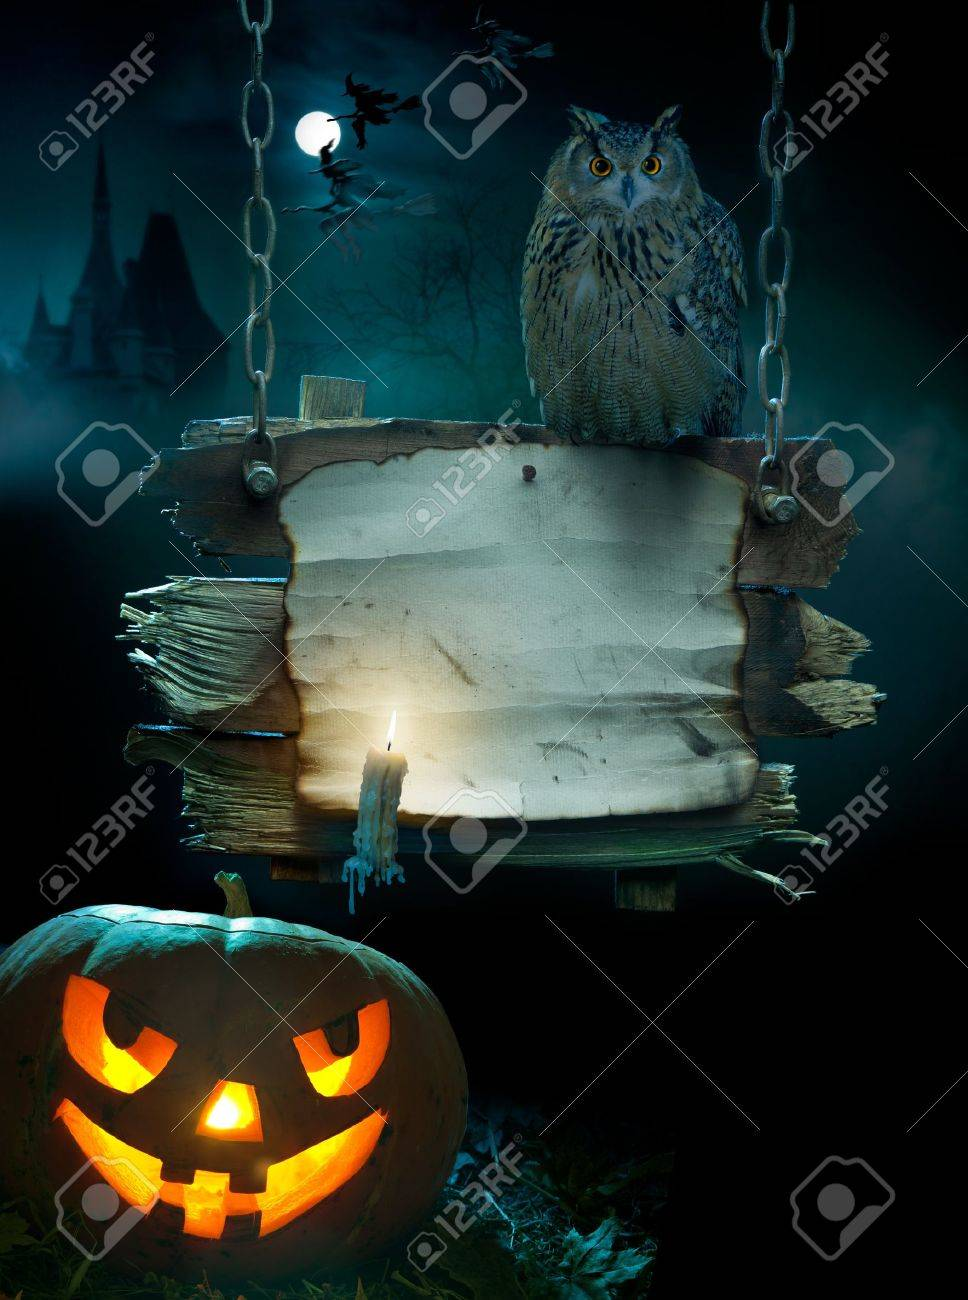 Design Background For A Party On The Night Of Halloween Stock ...